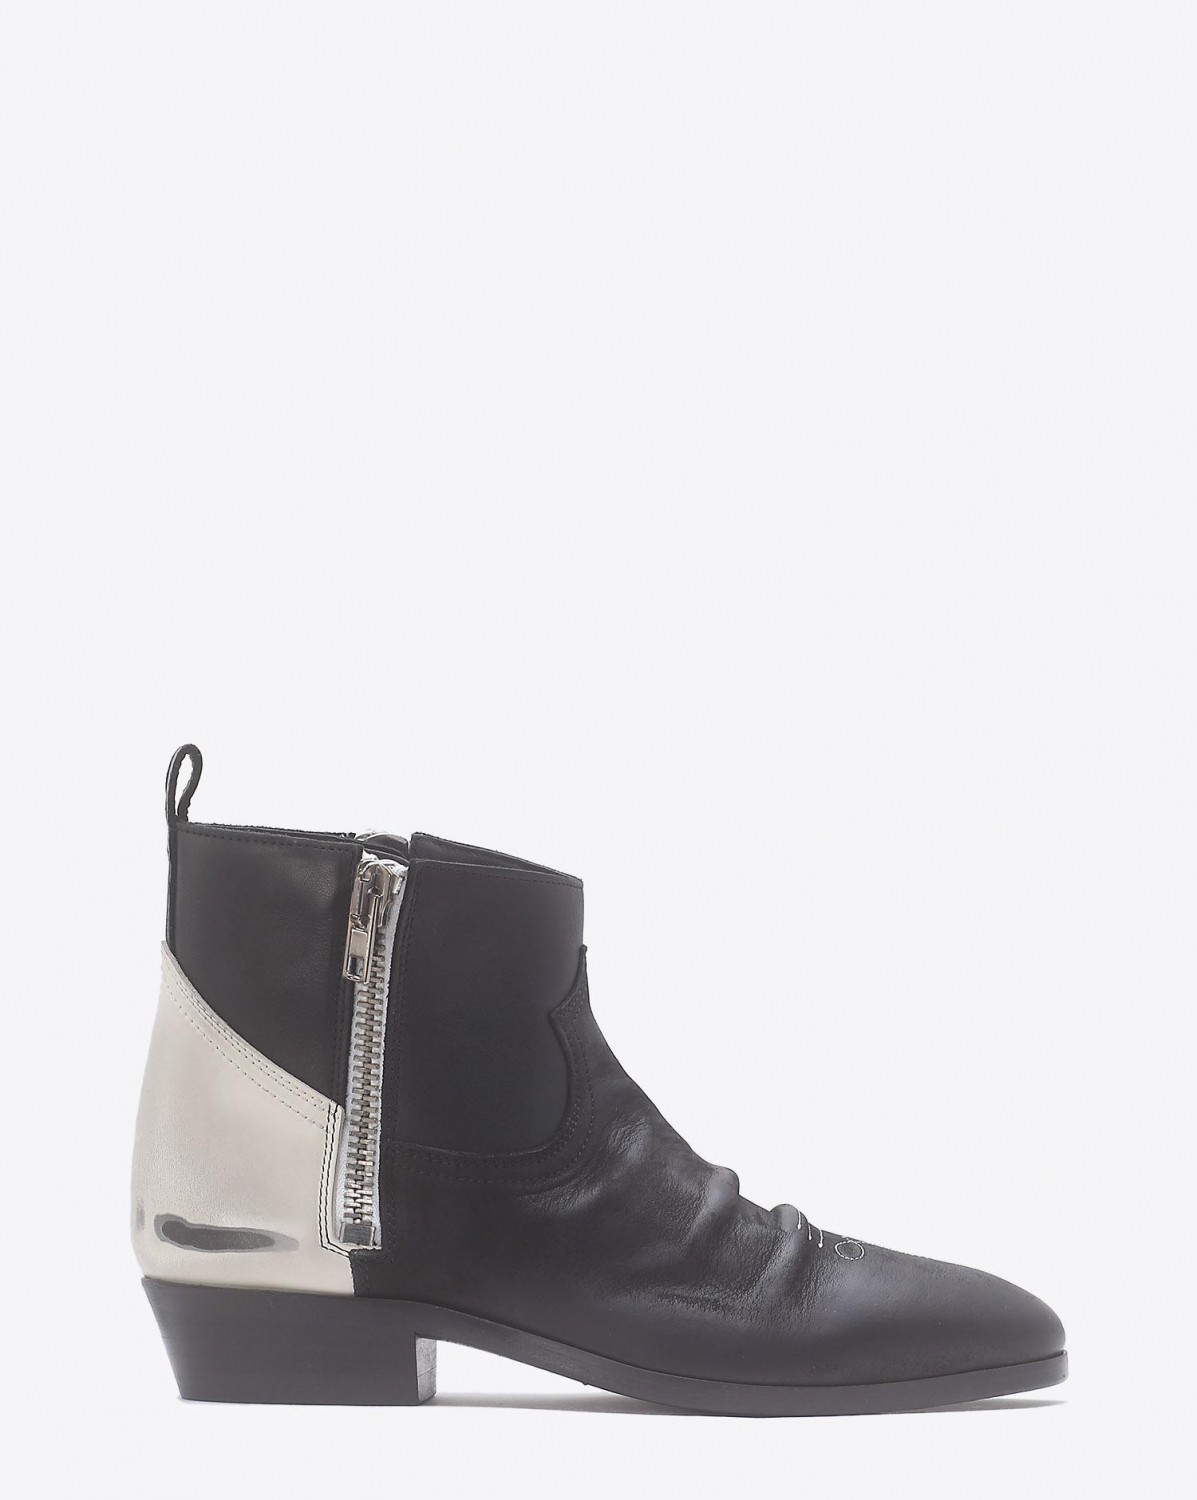 Golden Goose Woman Chaussures Pré-Collection Boots Viand Black And White Leather